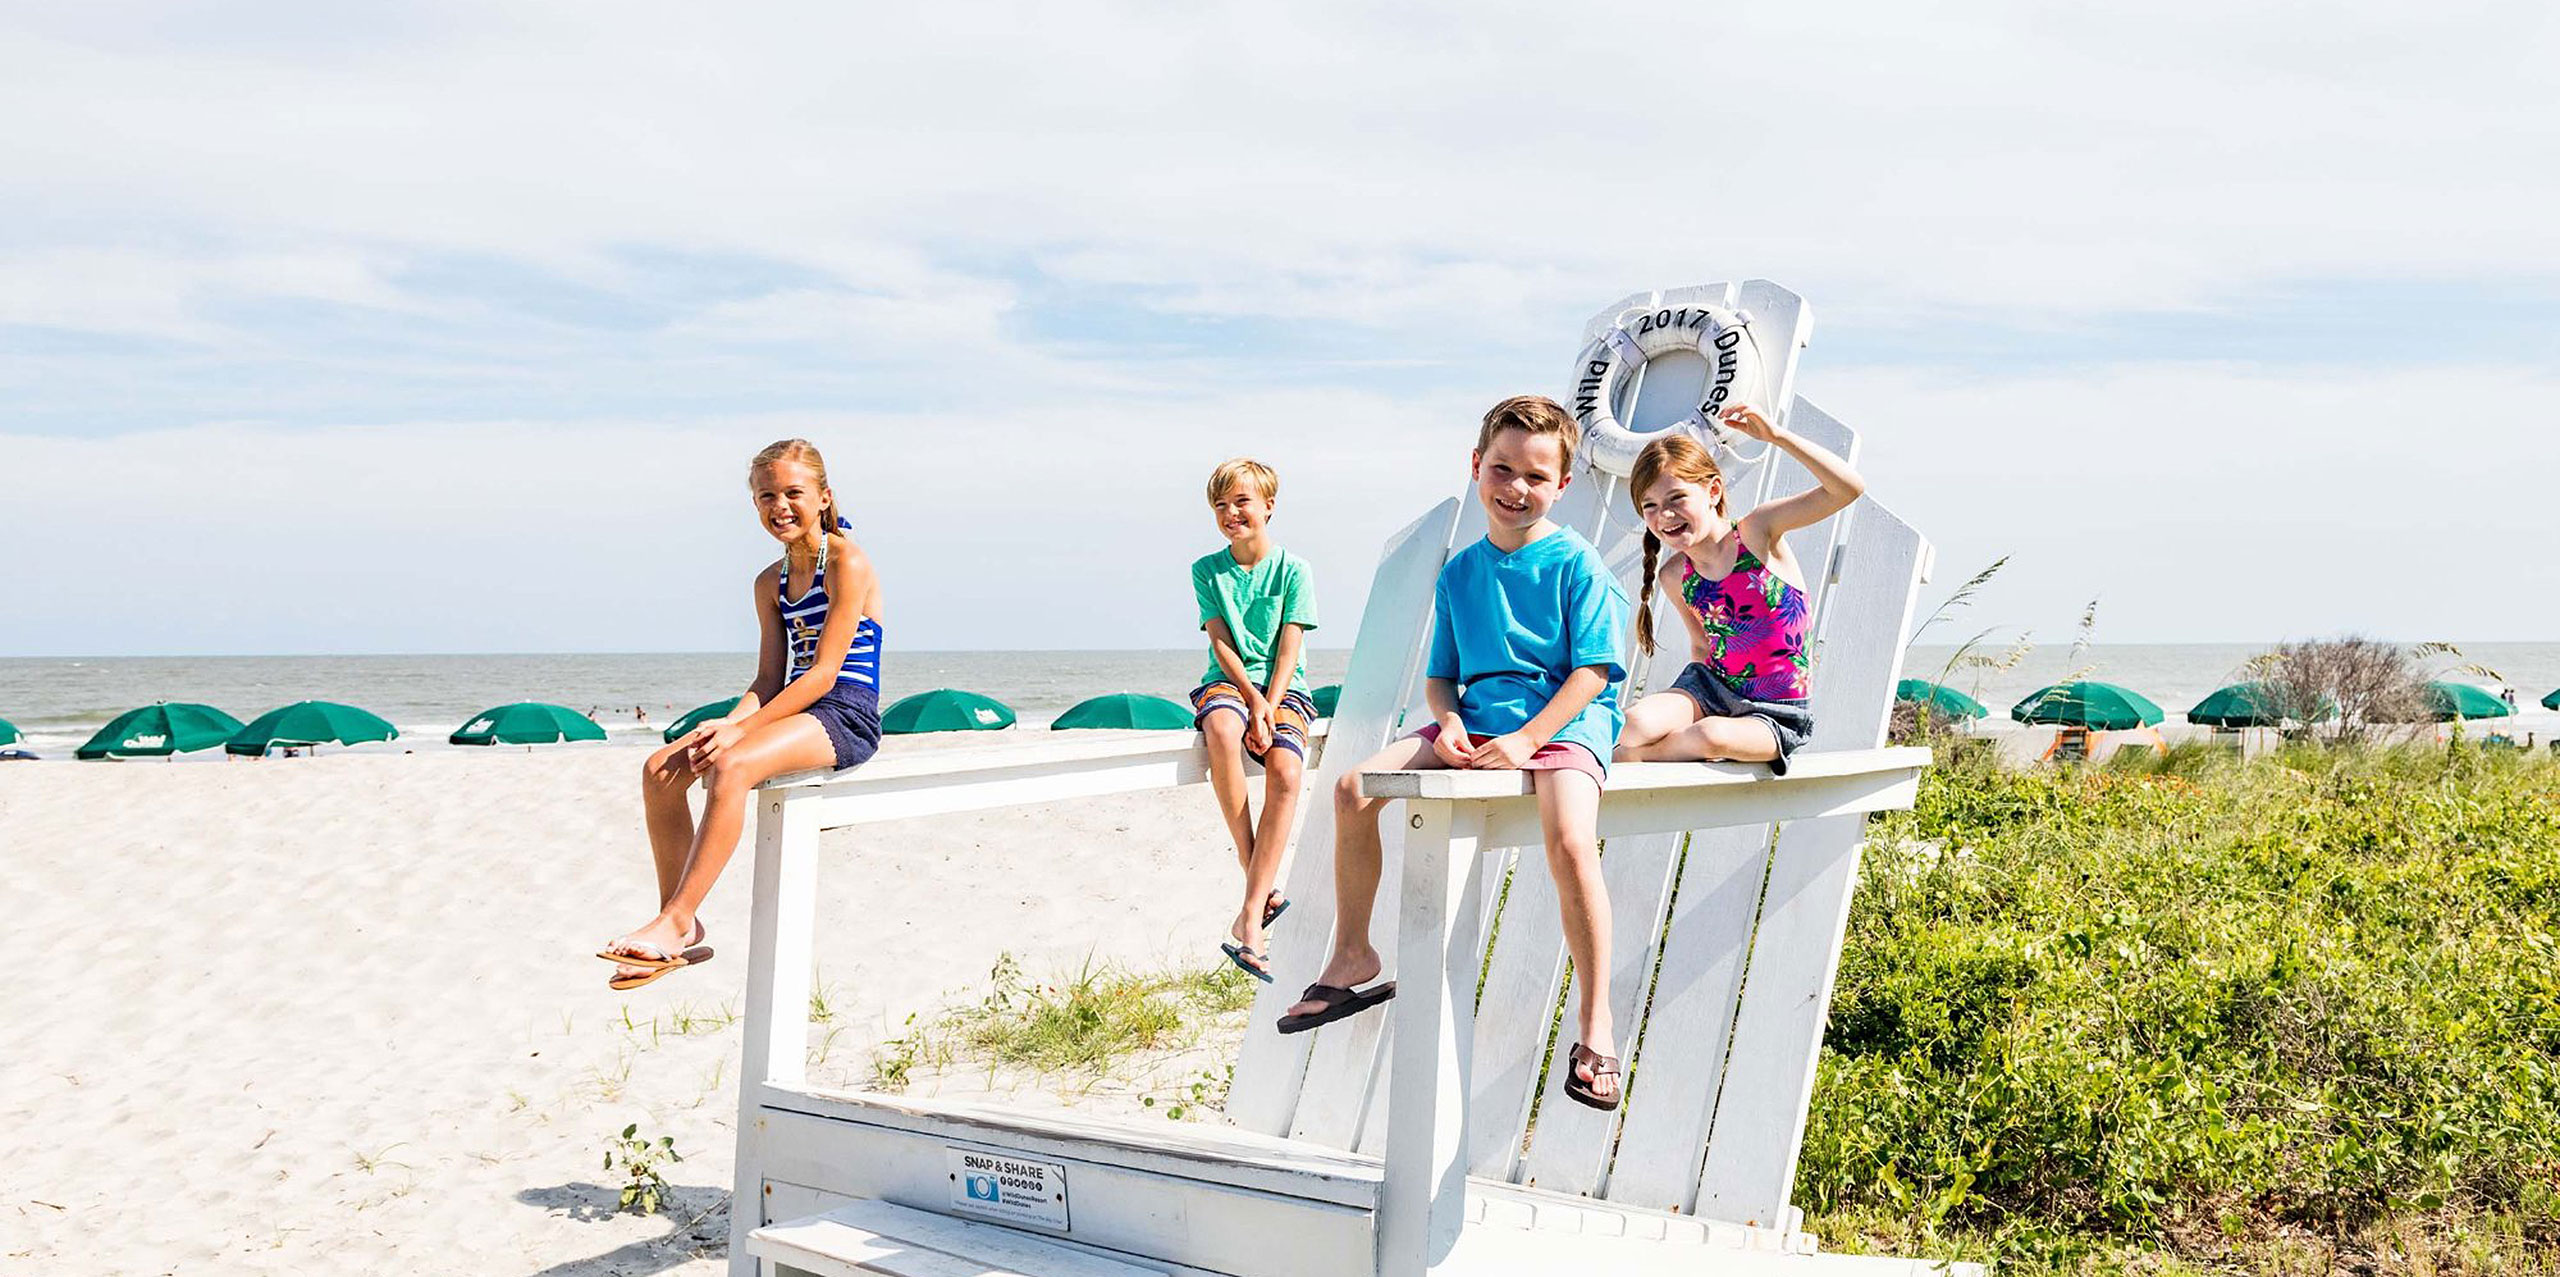 Kids at Wild Dunes Resort in Isle of Palms, SC